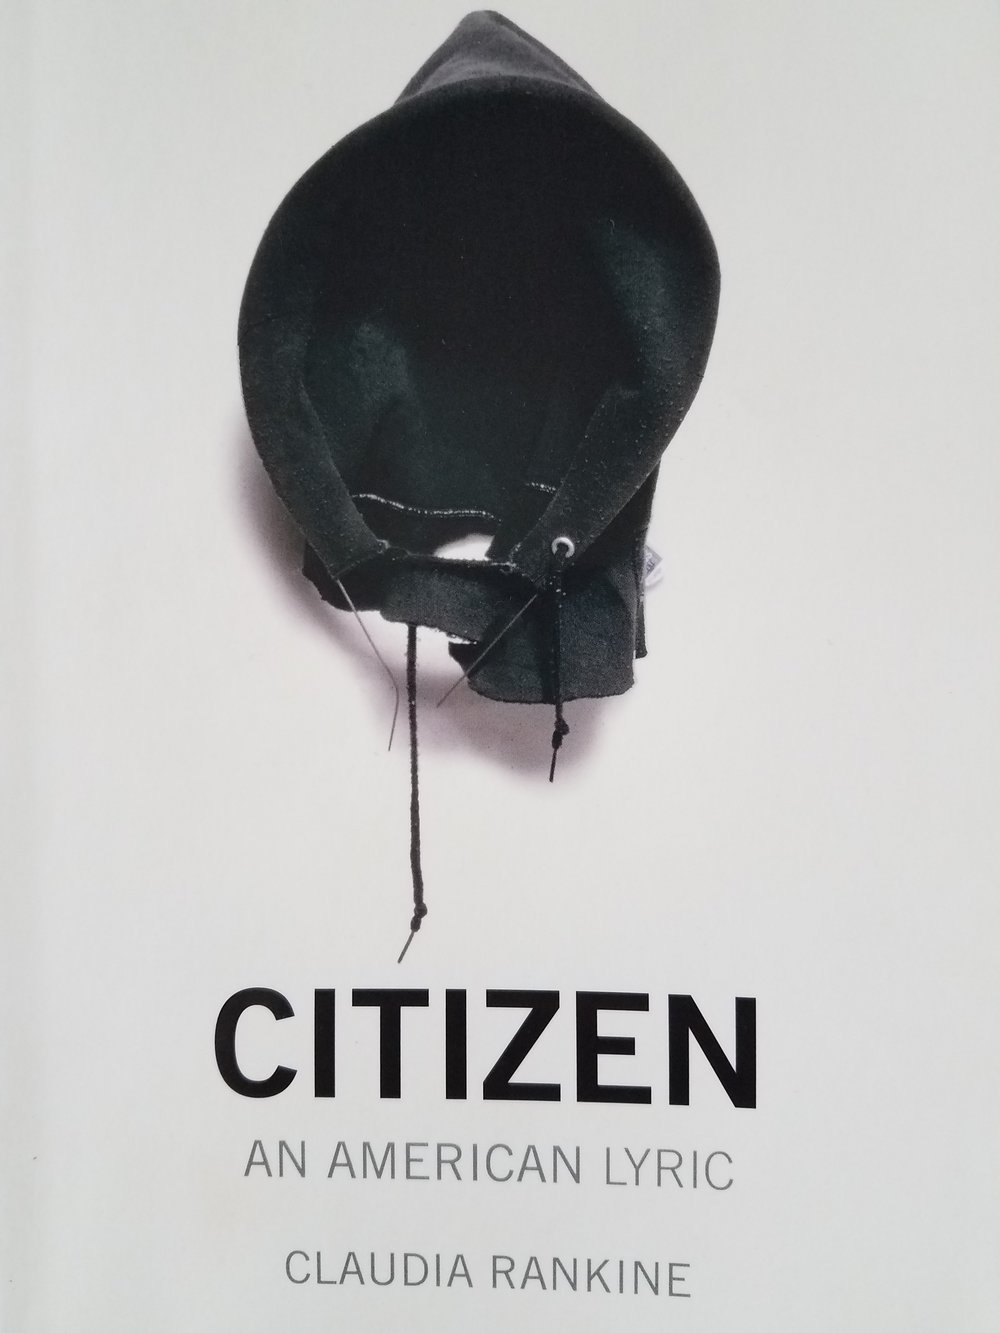 """Citizen: An American Lyric"" by Claudia Rankine. Rankine will visit Denver this month for a public discussion on the book and race in contemporary society. Credit: S.E. Fleenor"